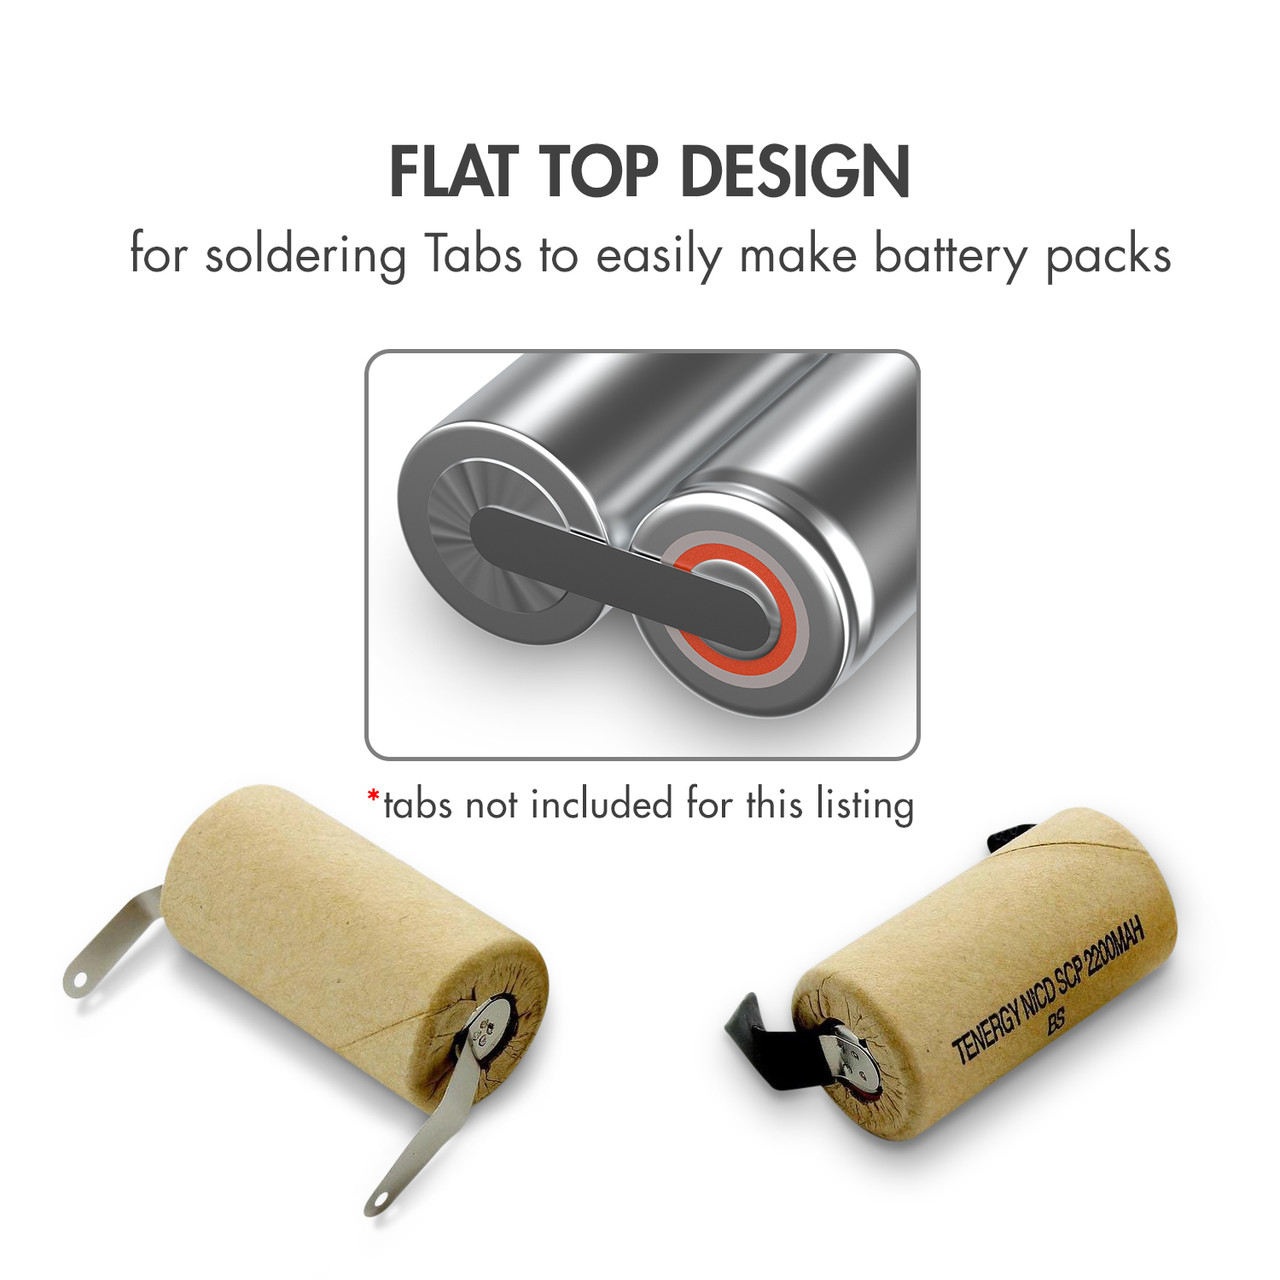 Tenergy NiCd Sub C 2200mAh Paper Wrapped Rechargeable Battery (Flat Top)